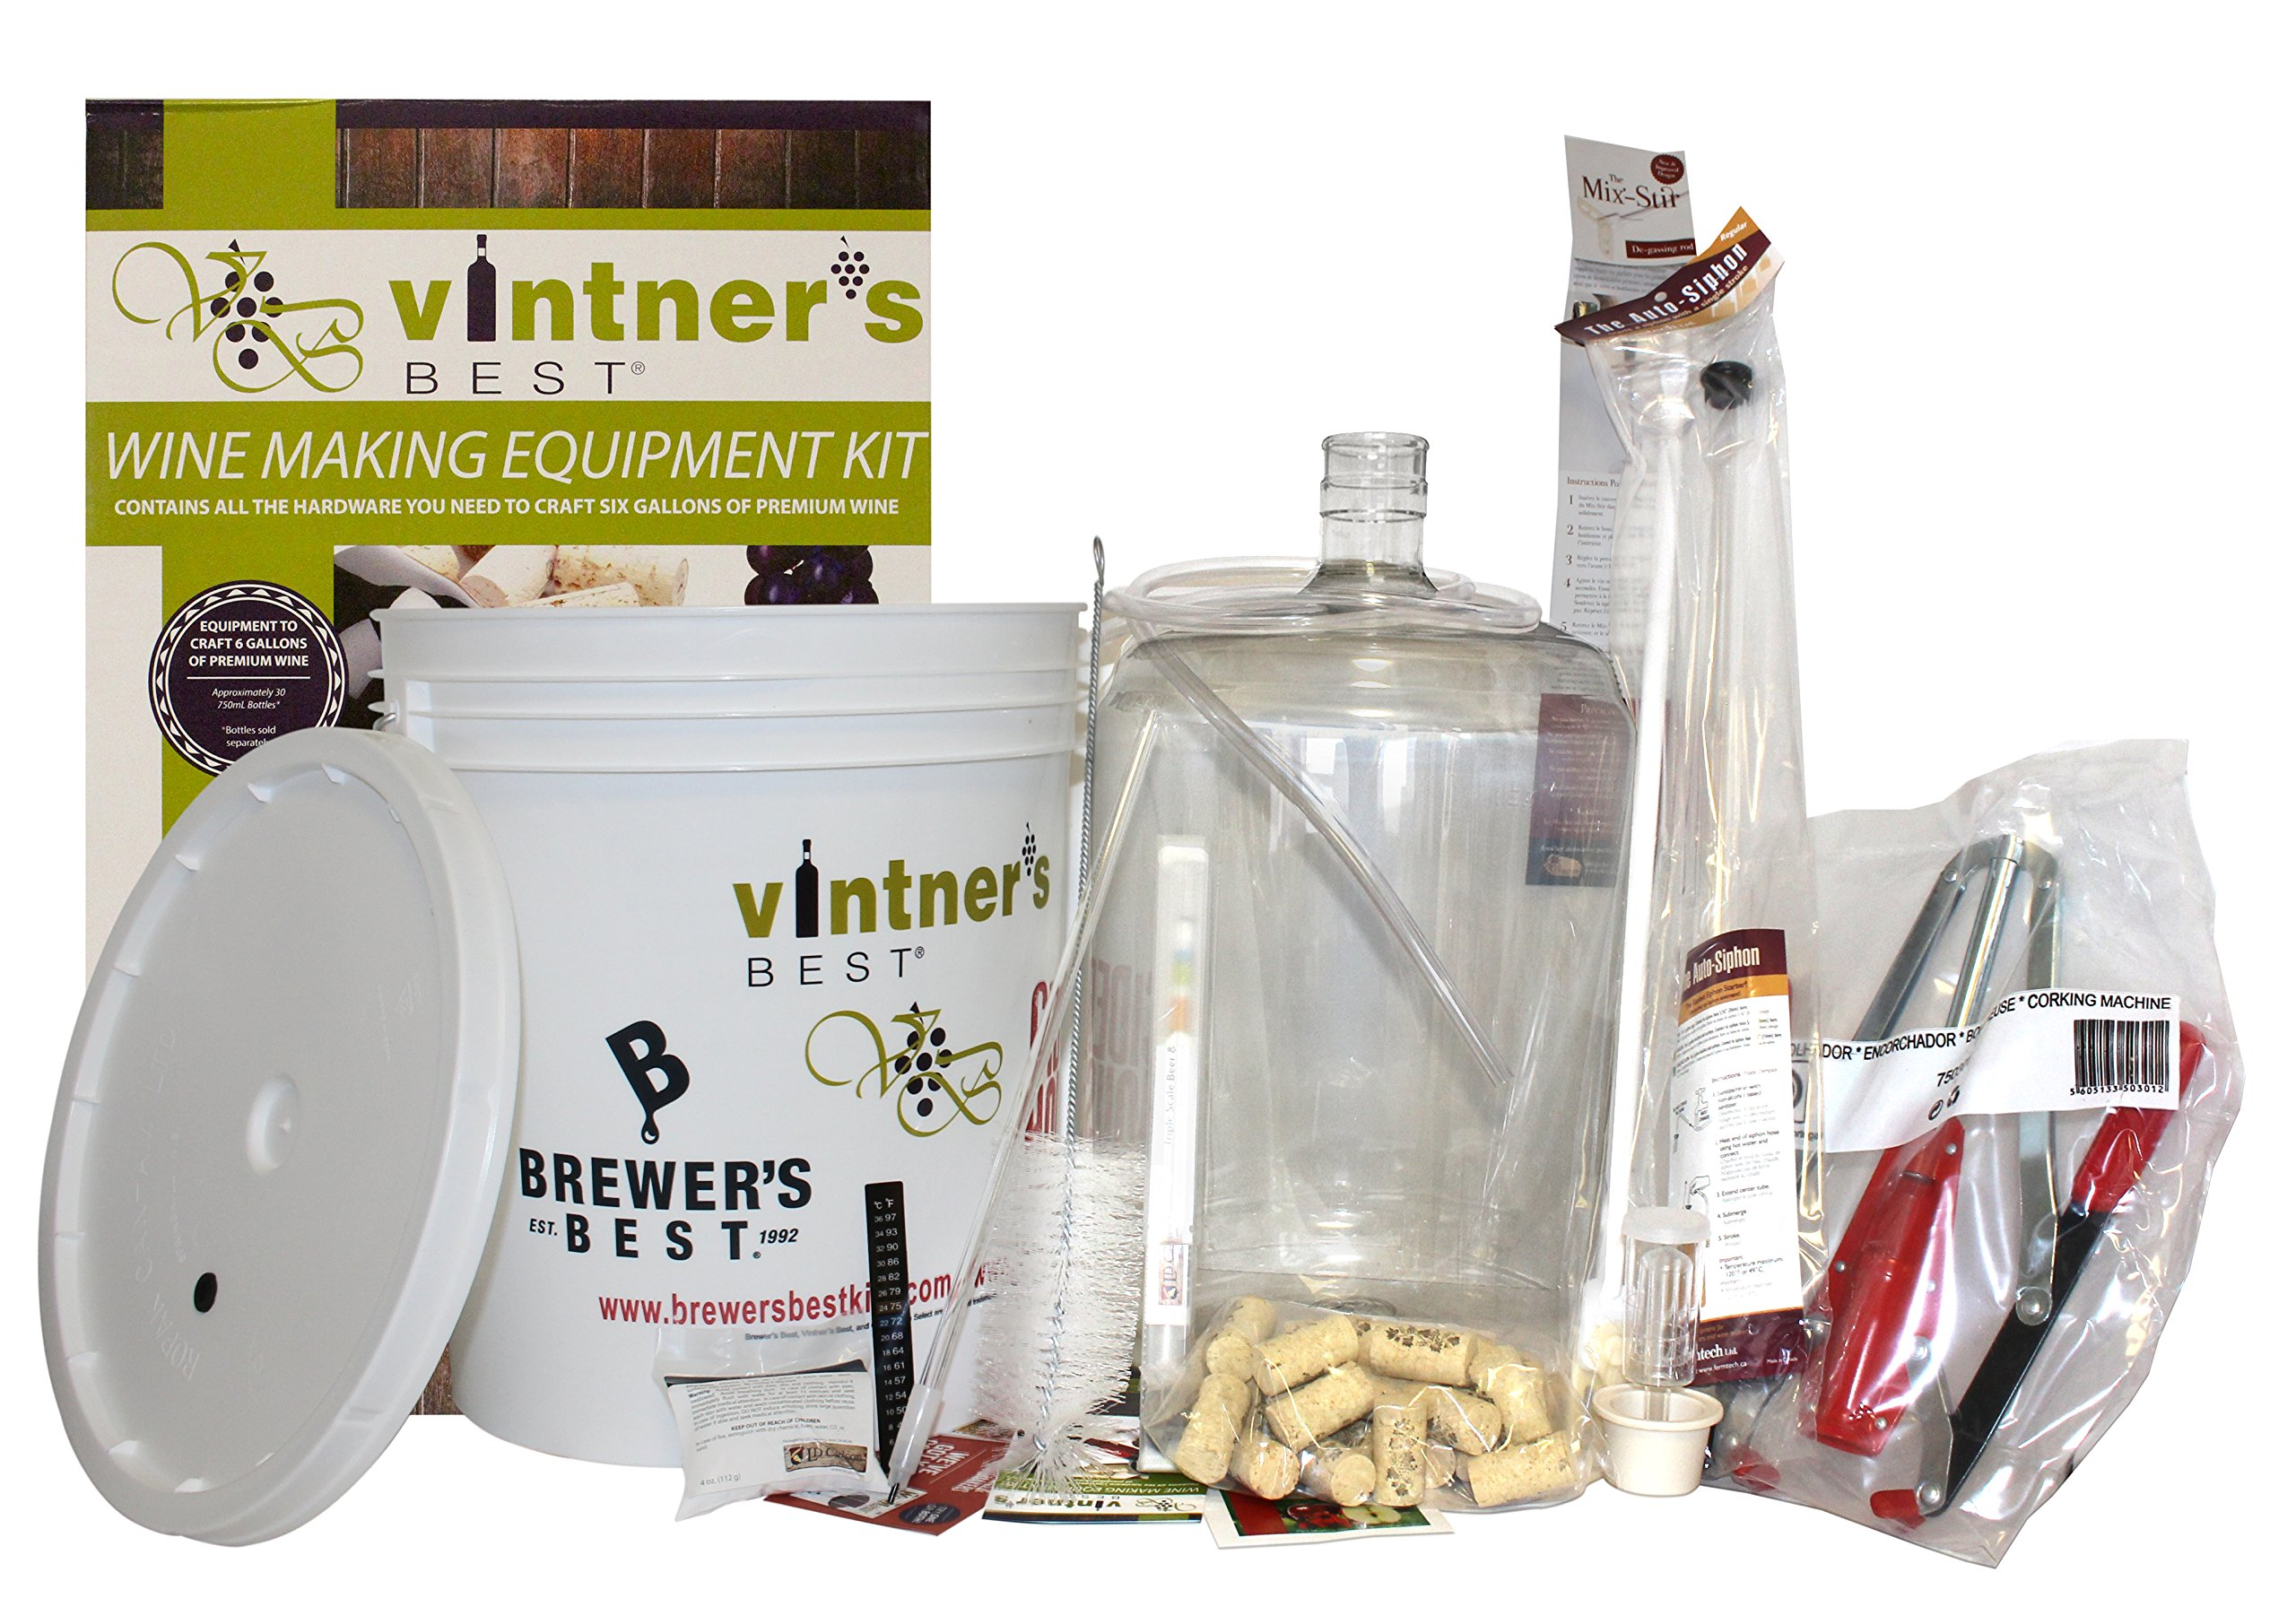 Starter Equipment Kit w/ Better Bottle & Double Lever Corker by Midwest Homebrewing and Winemaking Supplies